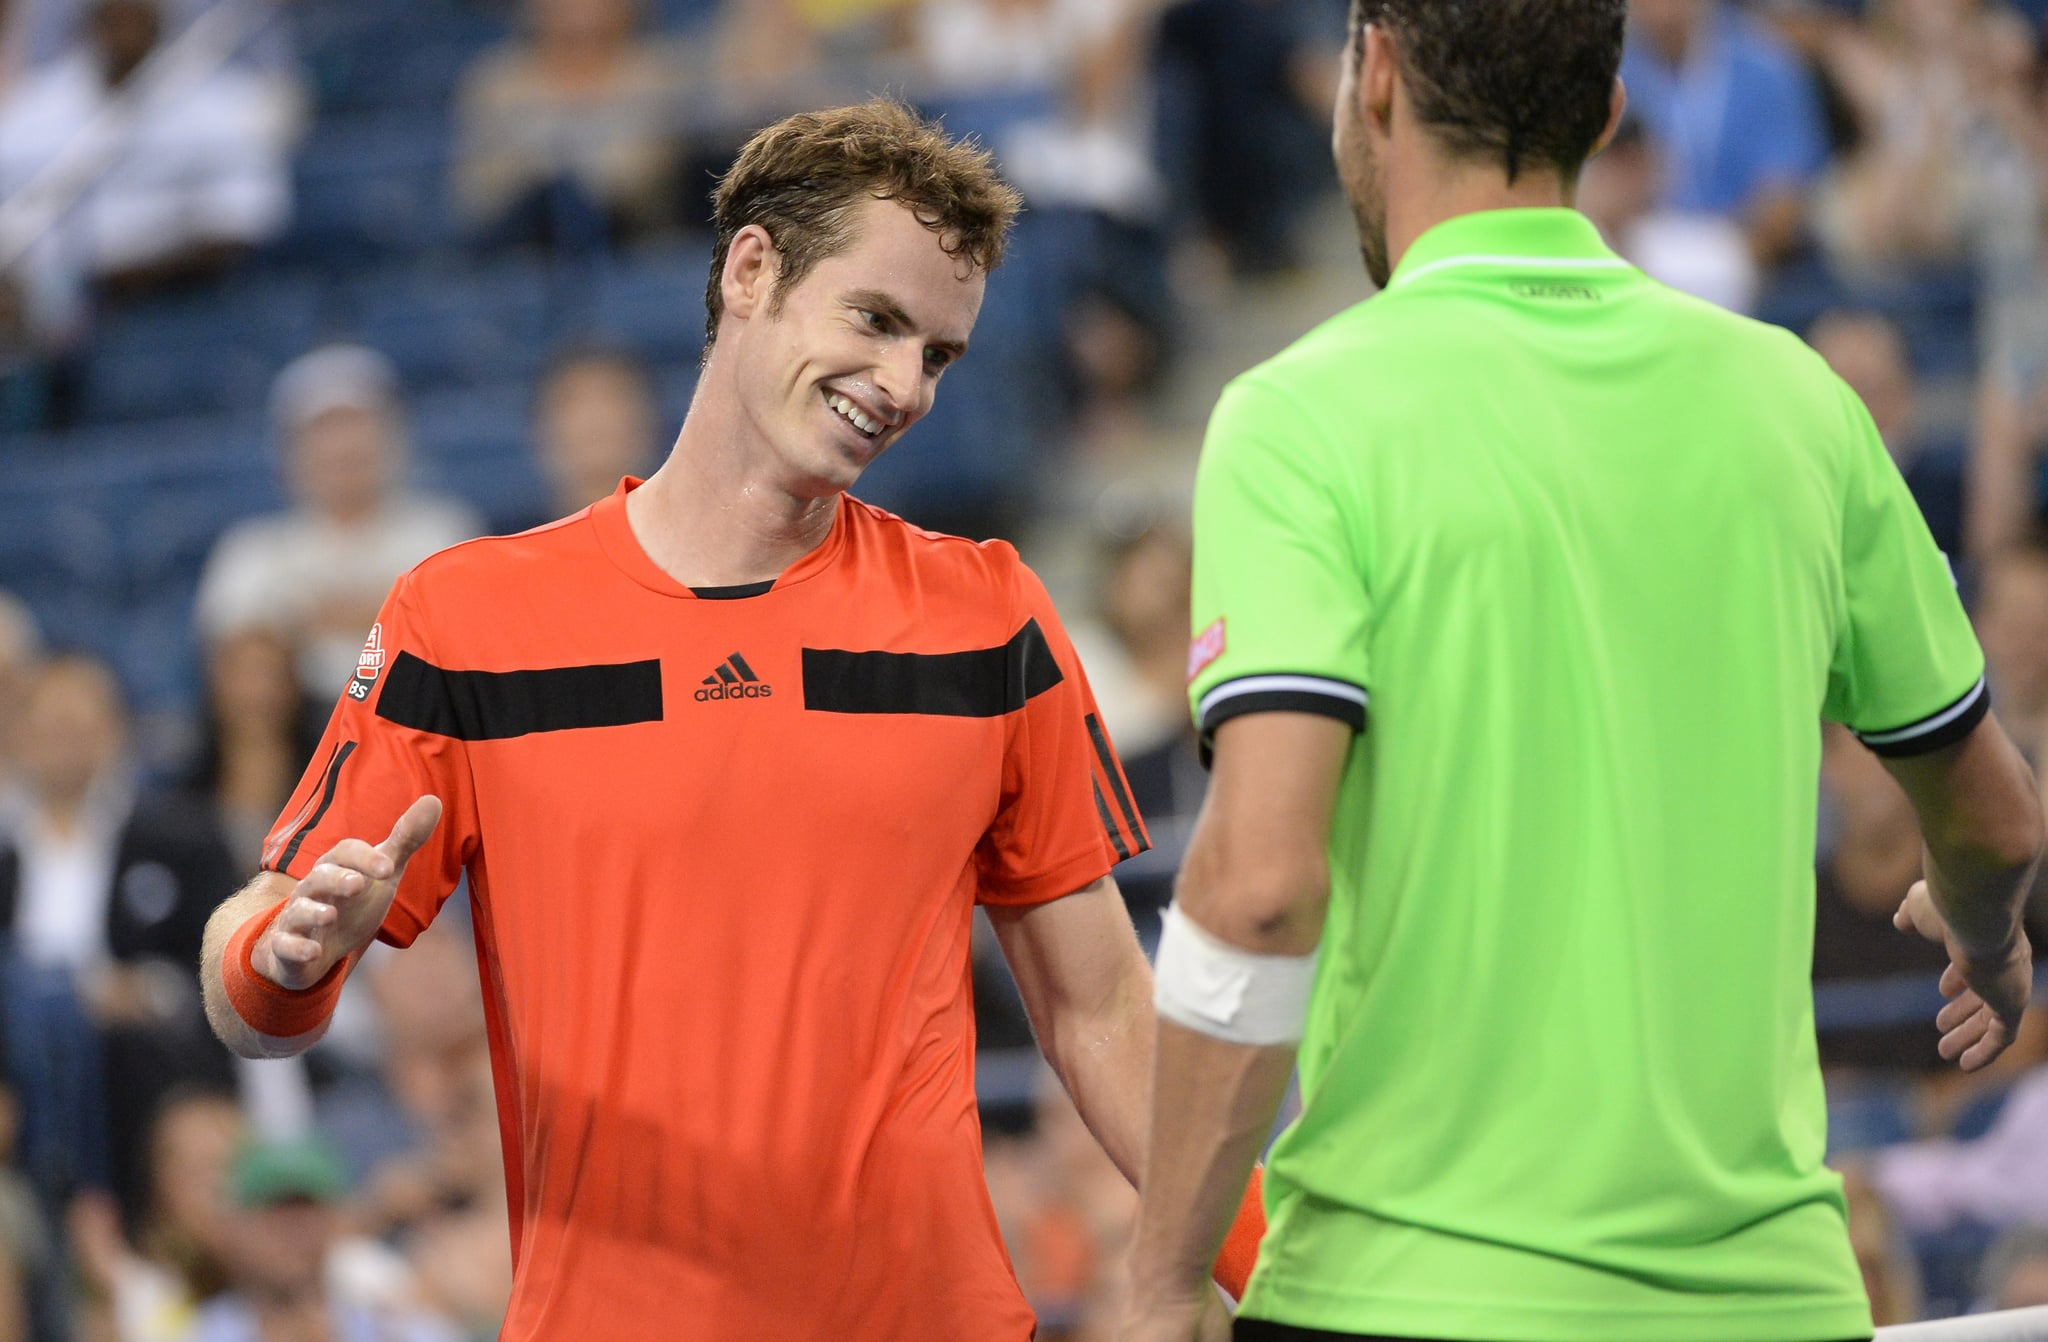 Andy Murray was all smiles after winning his men's singles match.